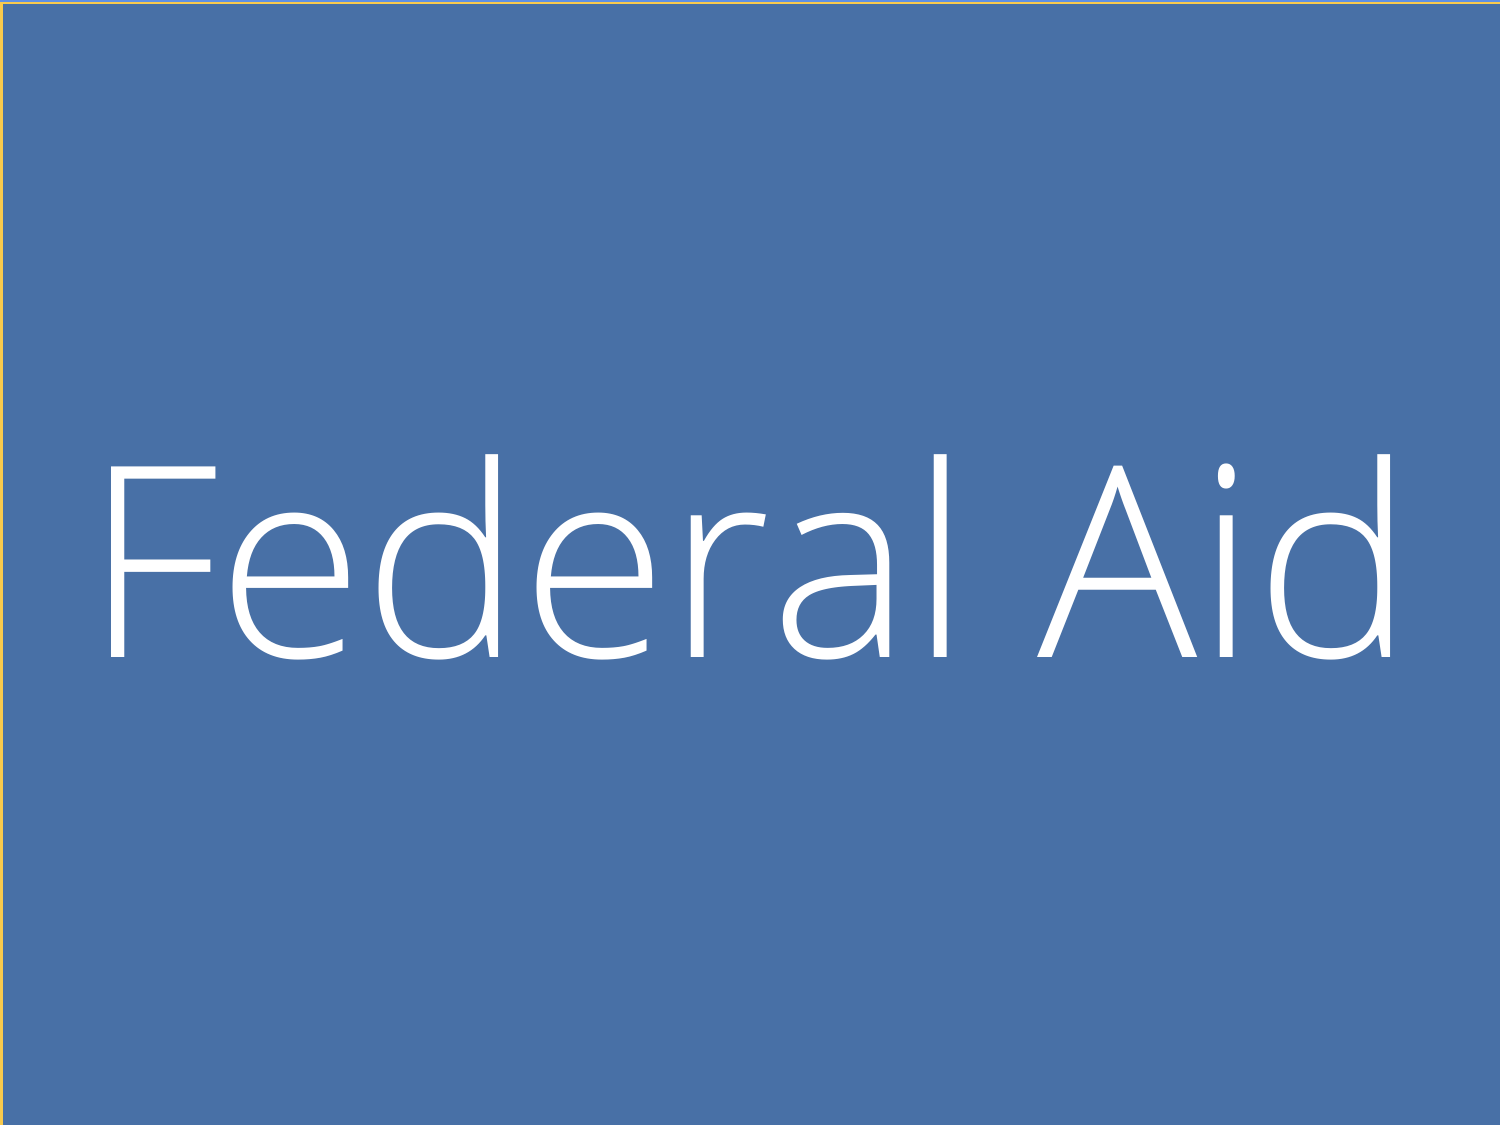 Learn about WATS' Federal Aid Committees, meeting schedule, and find applications for funding